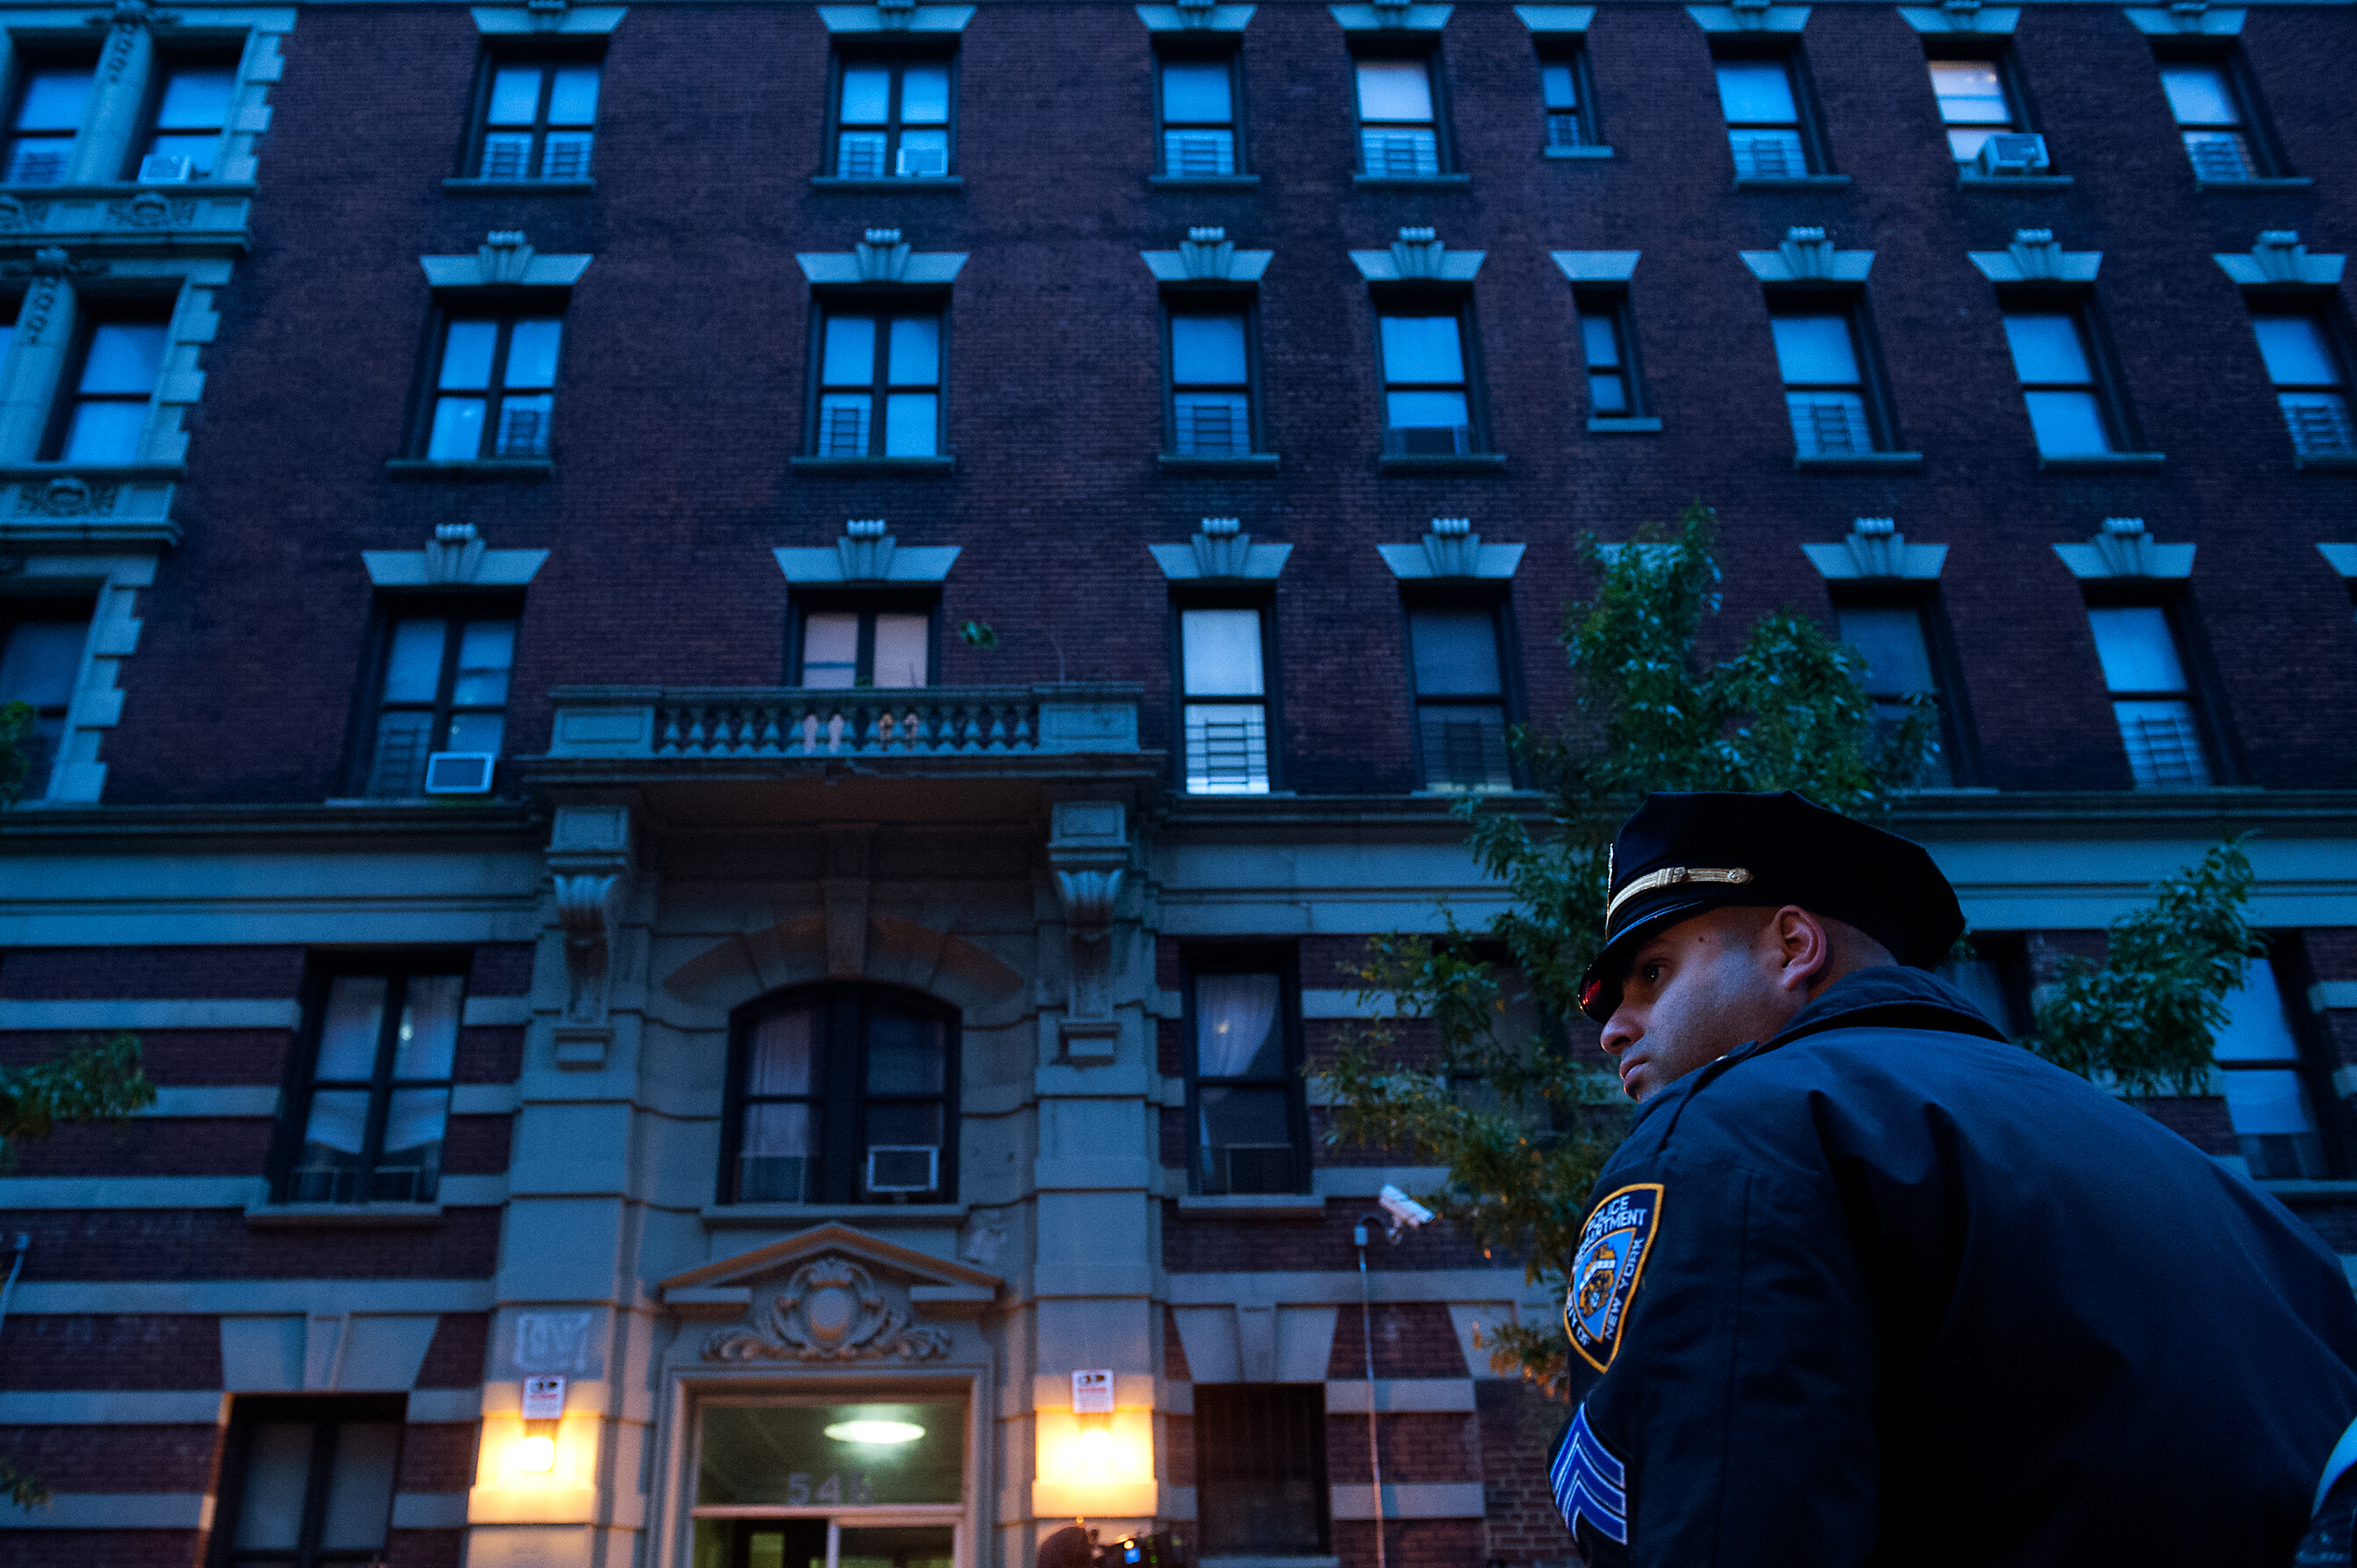 Police officers stand outside 546 W. 147th street, the apartment building of Dr. Craig Spencer on Oct. 23, 2014 in New York City.